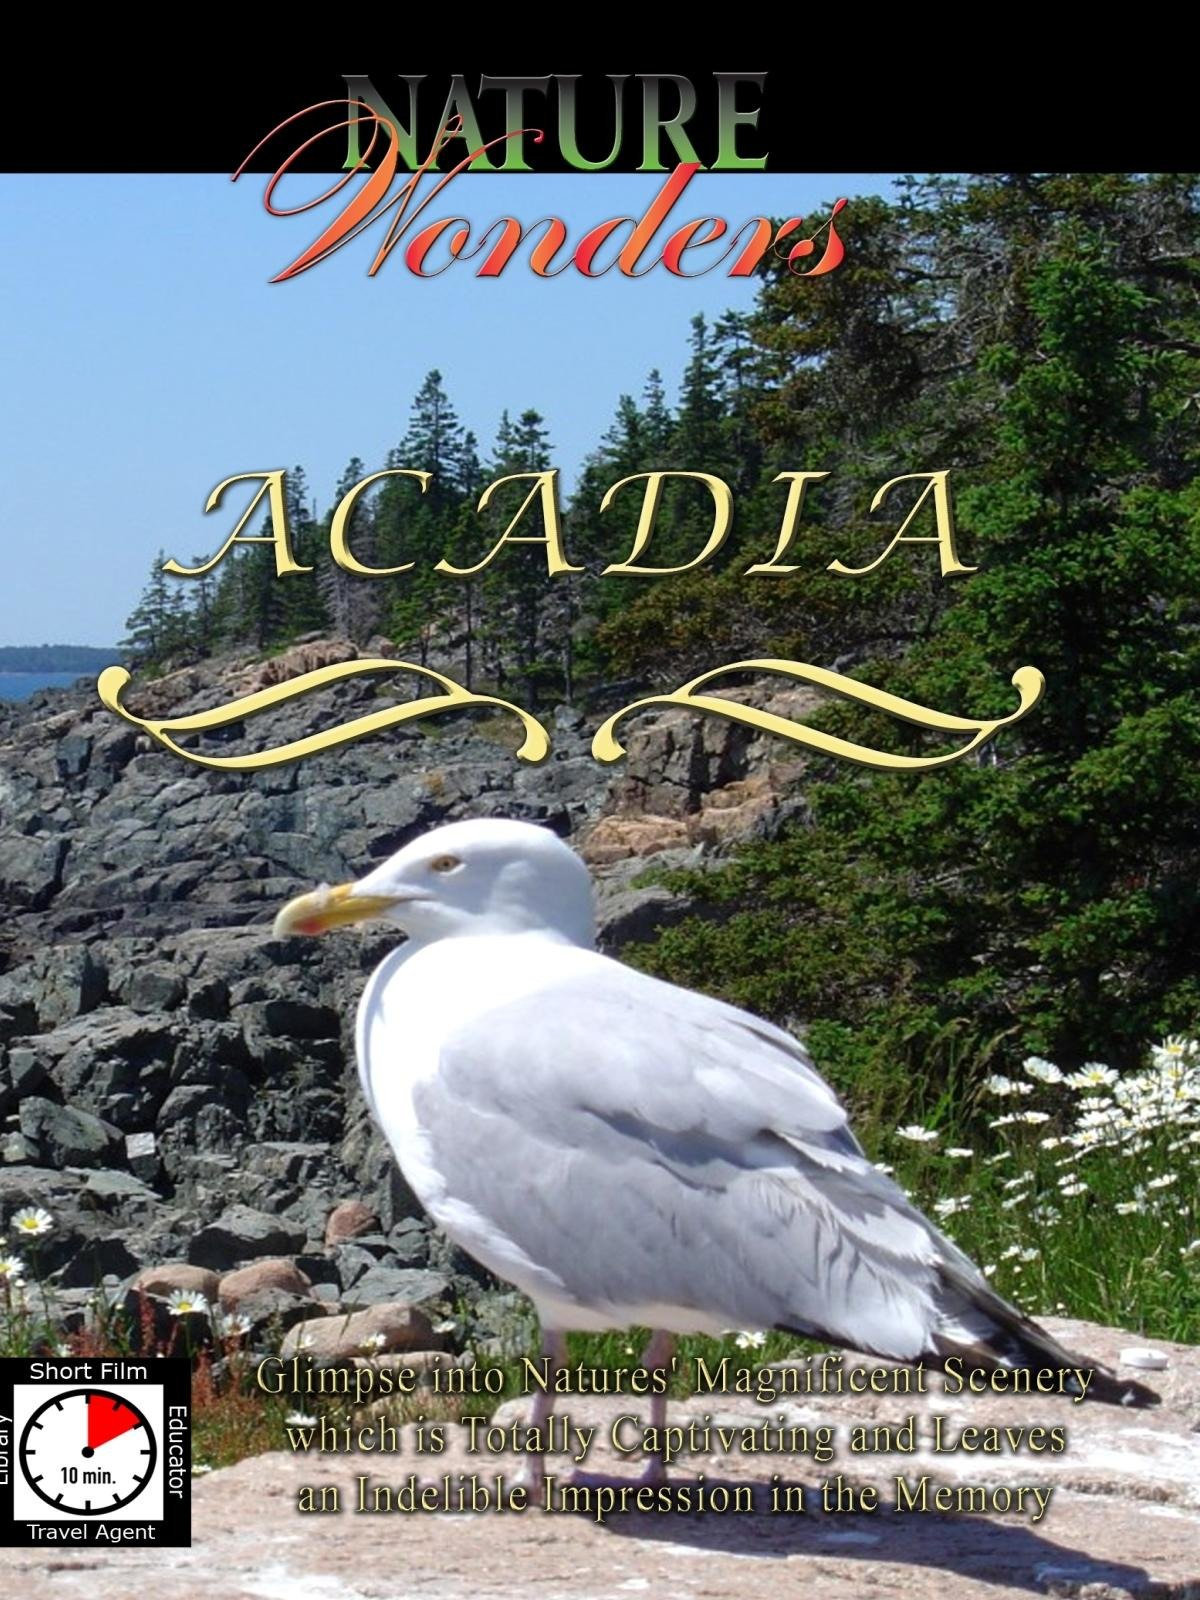 Nature Wonders - Acadia - Maine - U.S.A. on Amazon Prime Instant Video UK